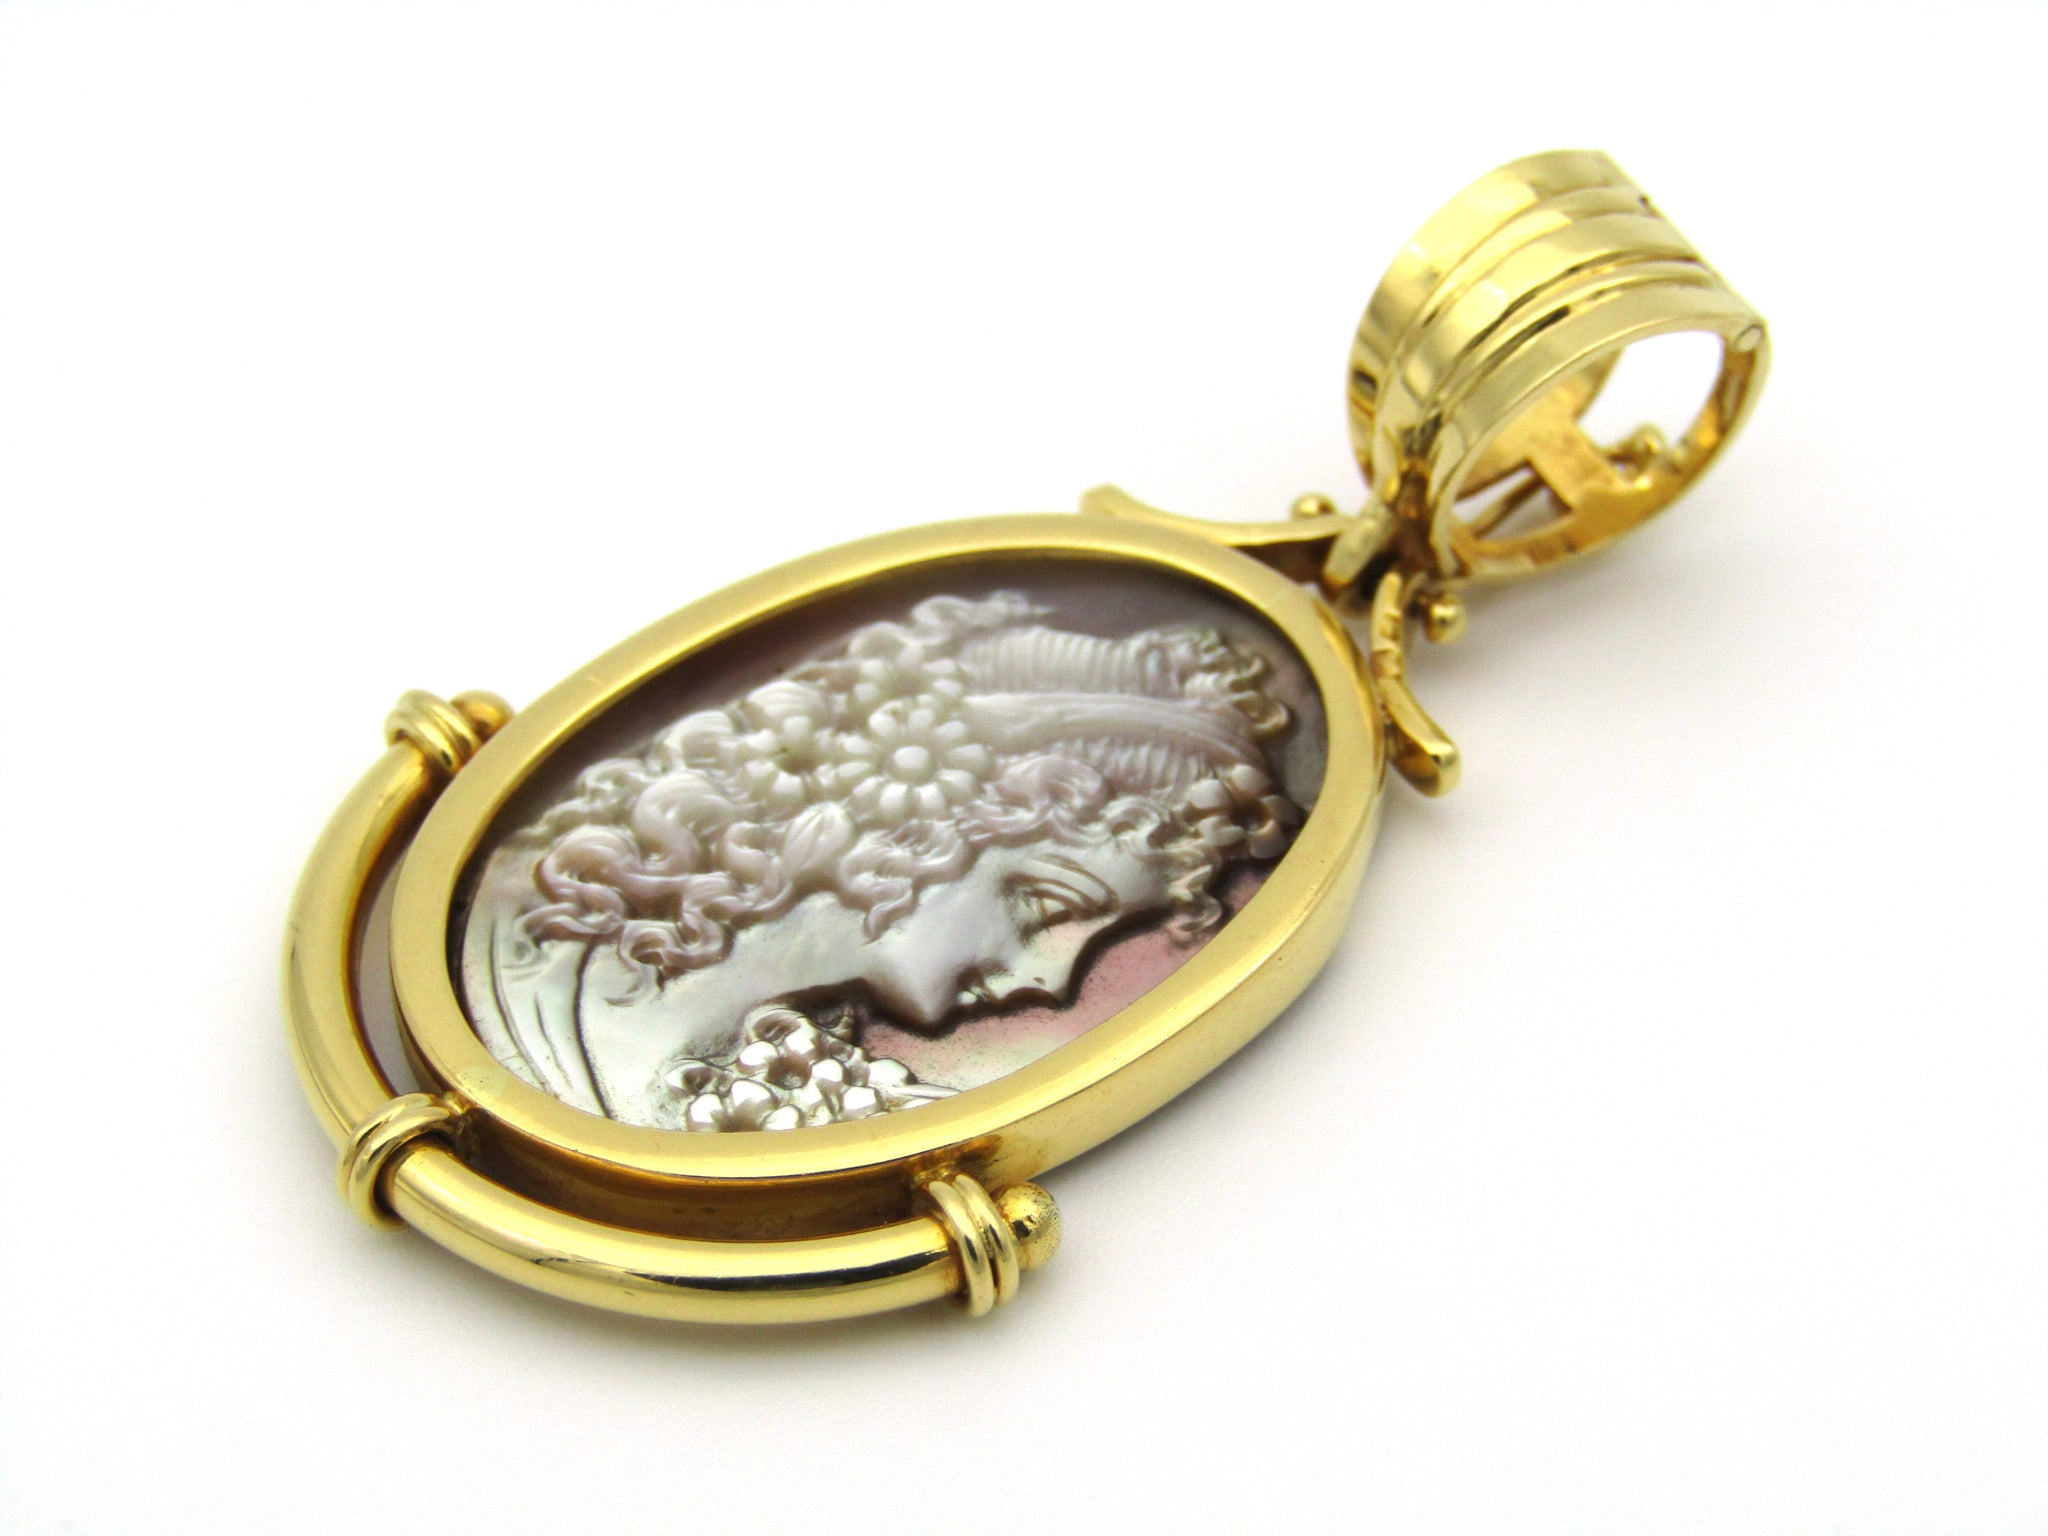 19,2K gold Portuguese mother-of-pearl cameo pendant.